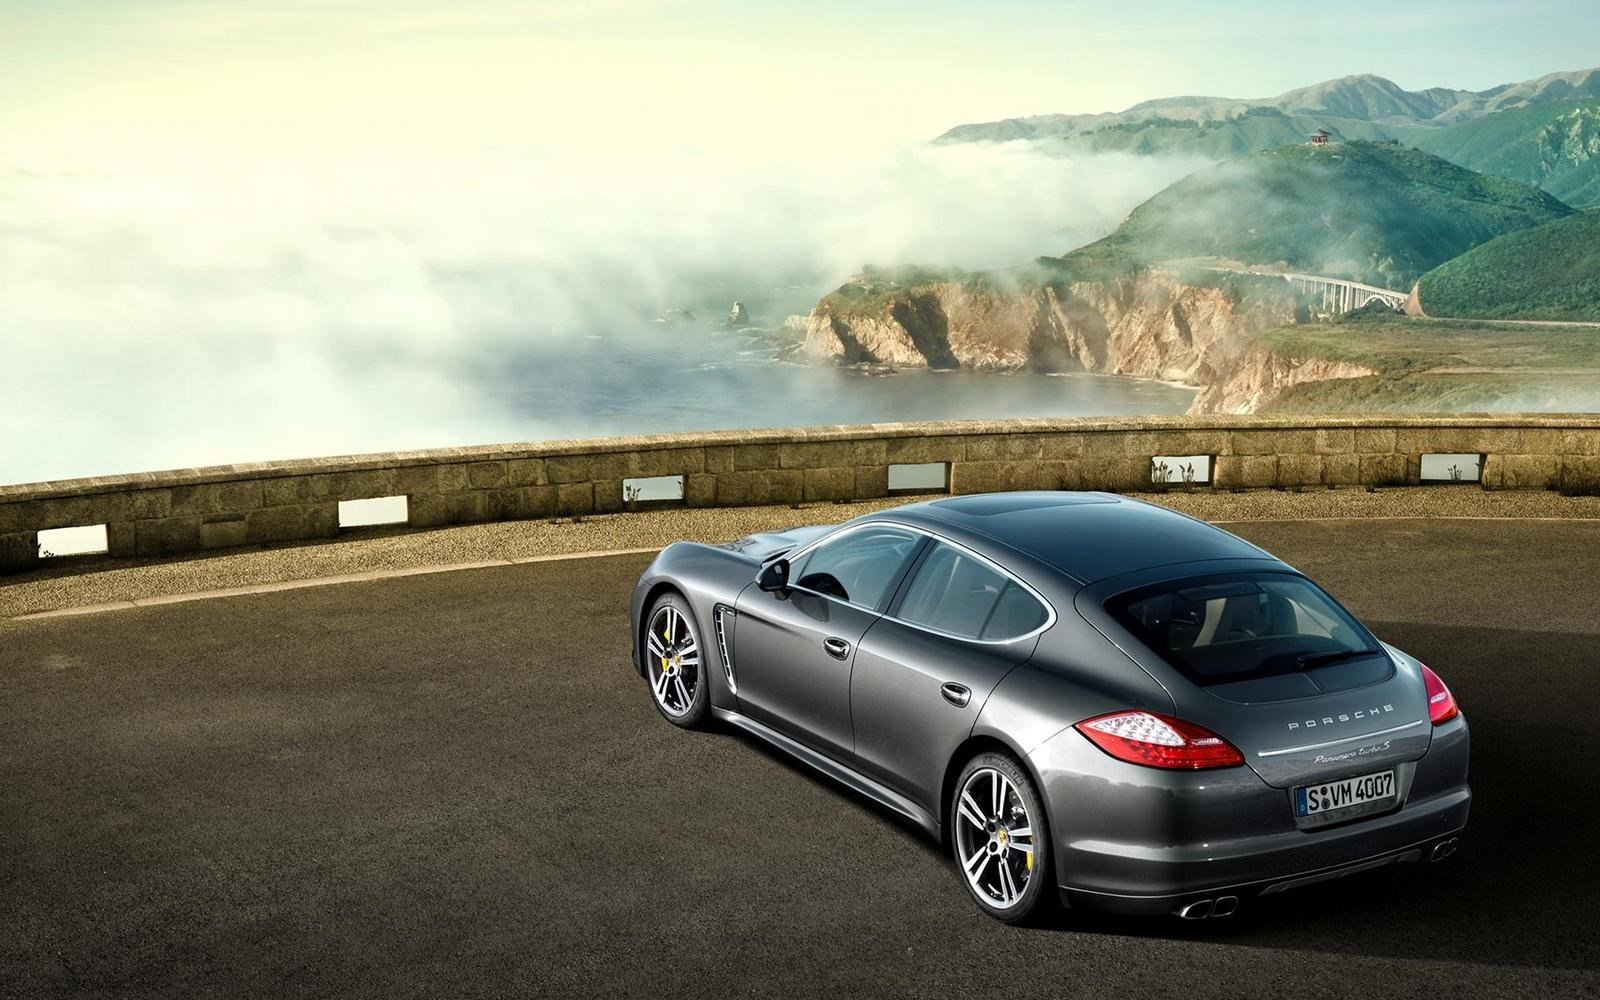 2012 porsche panamera turbo s picture 397536 car review top speed. Black Bedroom Furniture Sets. Home Design Ideas